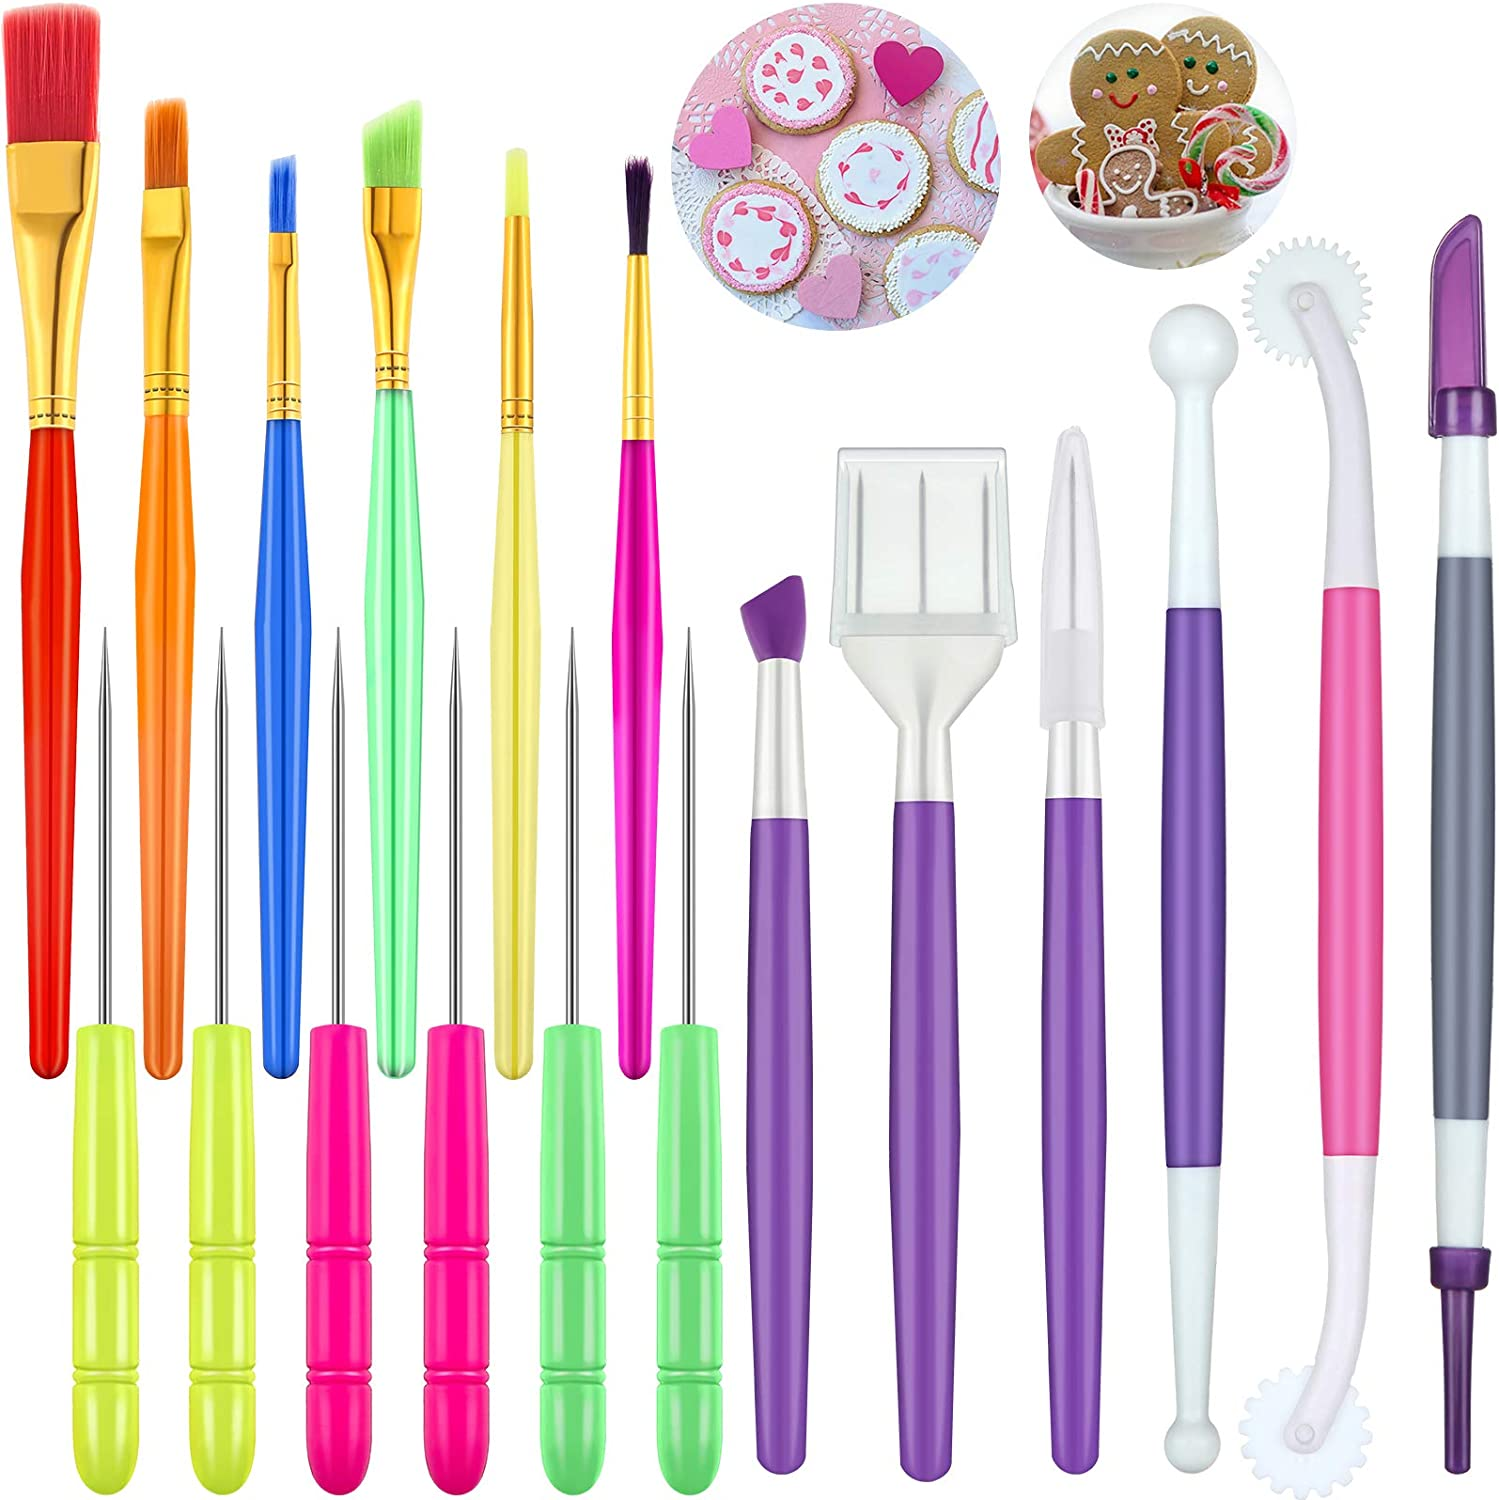 18 Pieces Cake Decorating Tool Set, Cookie Decoration Brushes Cookie Scriber Needles Sugar Stir Needle Double Head Fondant Gum Paste Tool for Cookie Cake Fondant Decoration